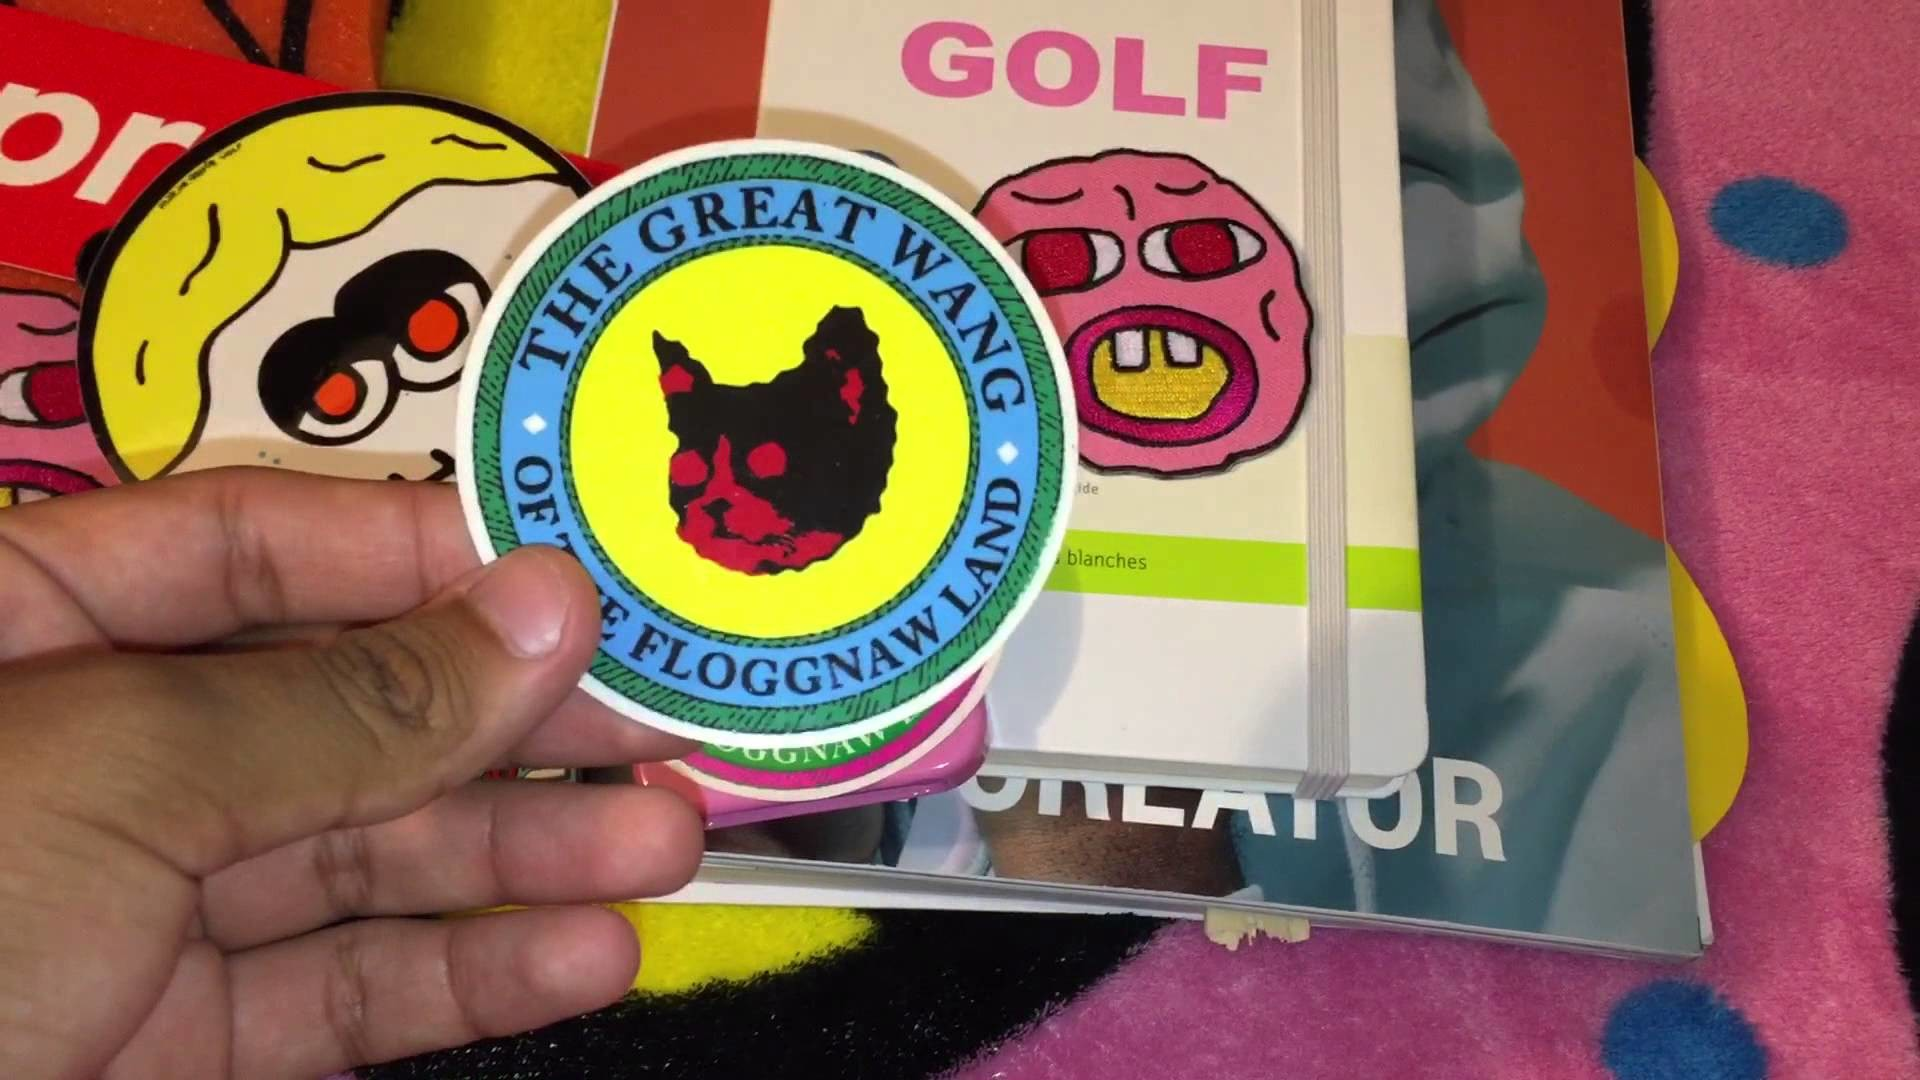 Golf Wang / Odd Future / Supreme Accessories And Sticker Collection –  YouTube